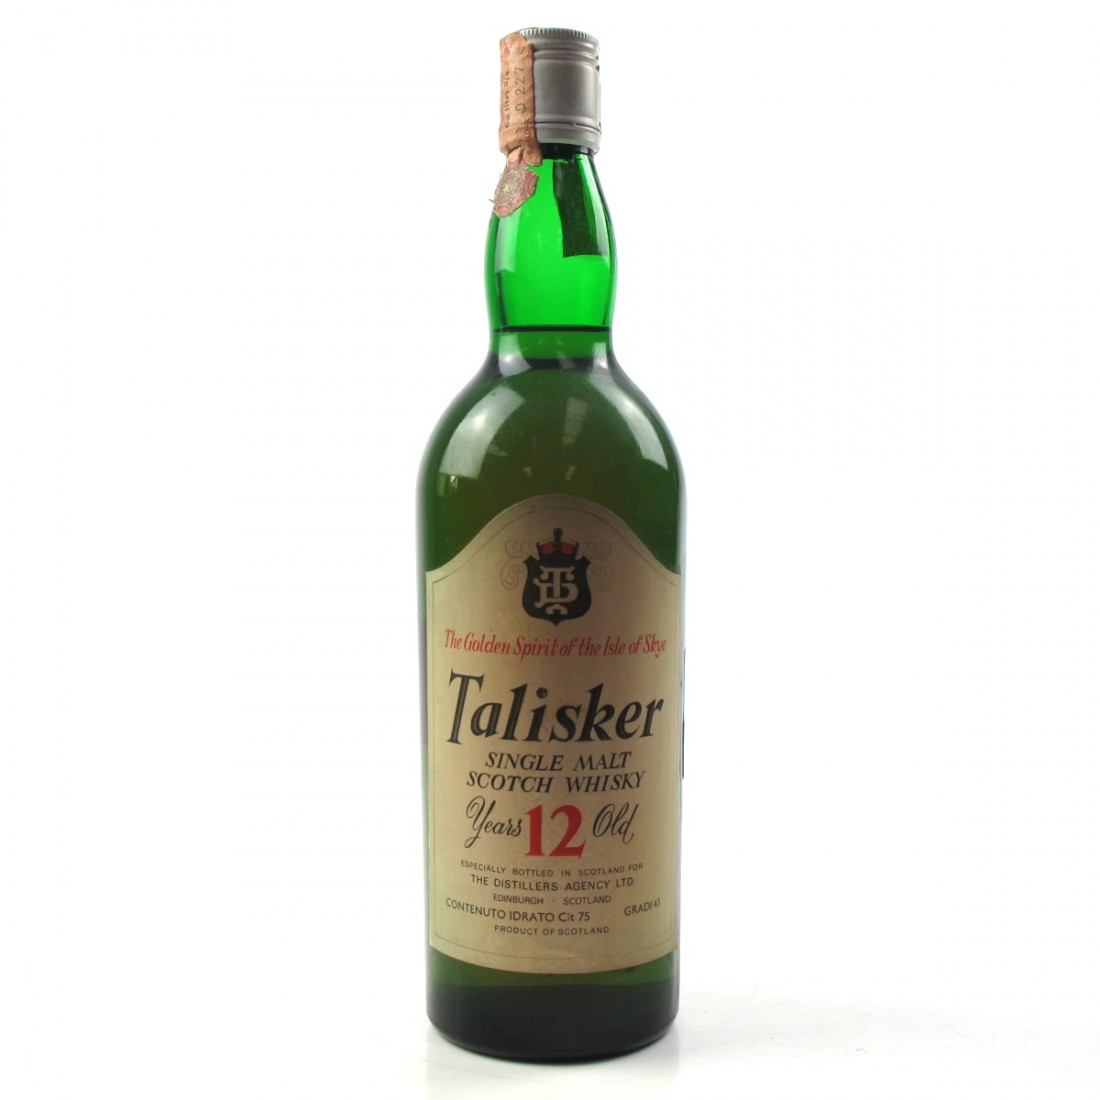 EDIT: Talisker 12 Year Old 1970s